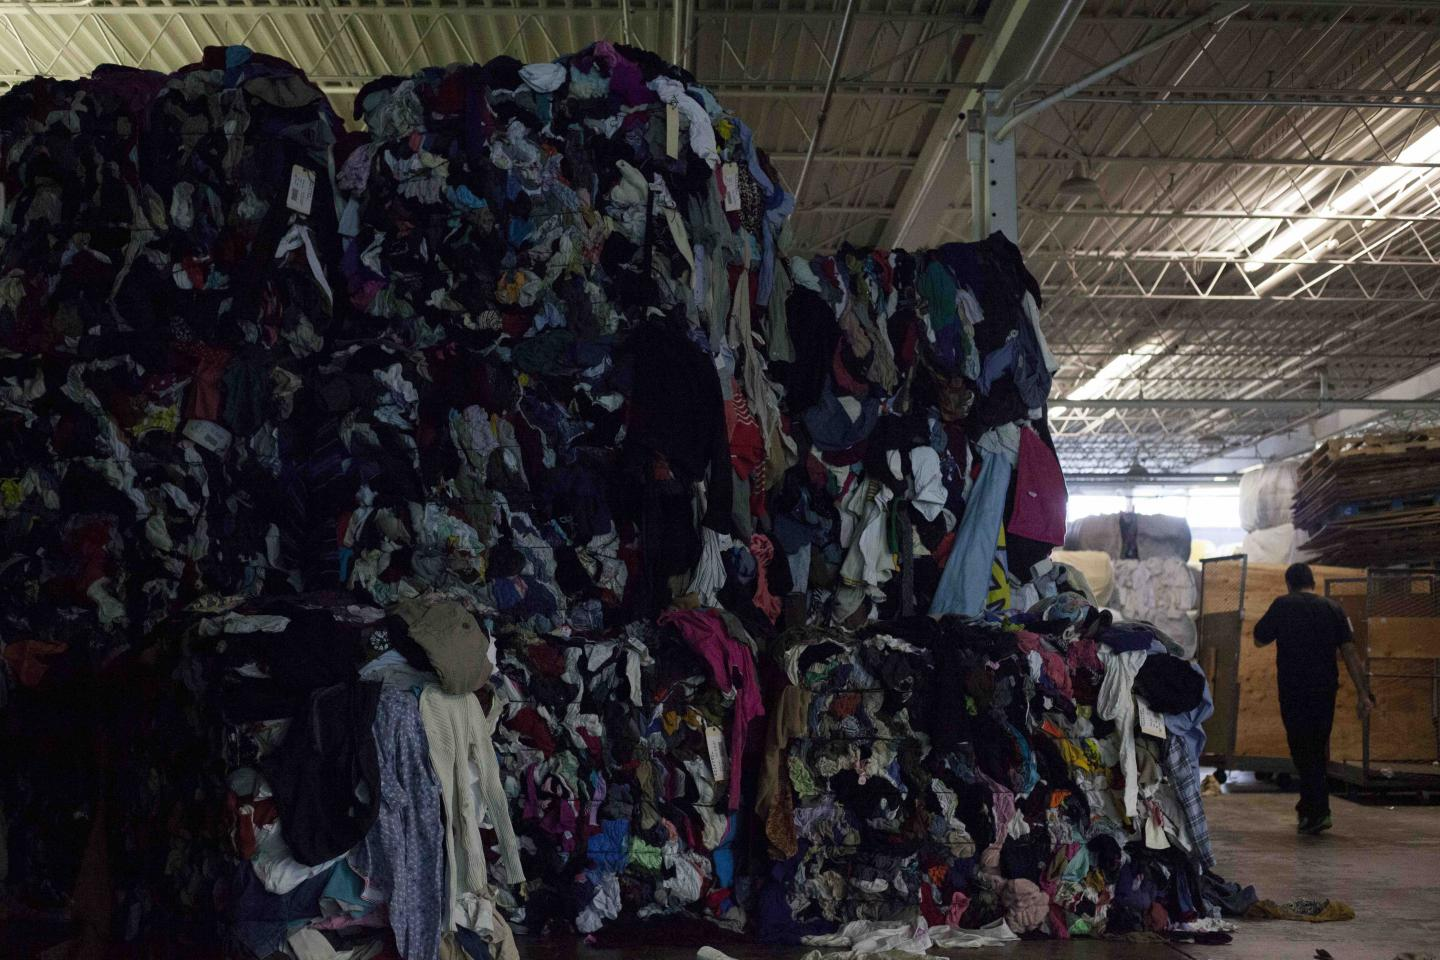 An enormous pile of discarded clothing.